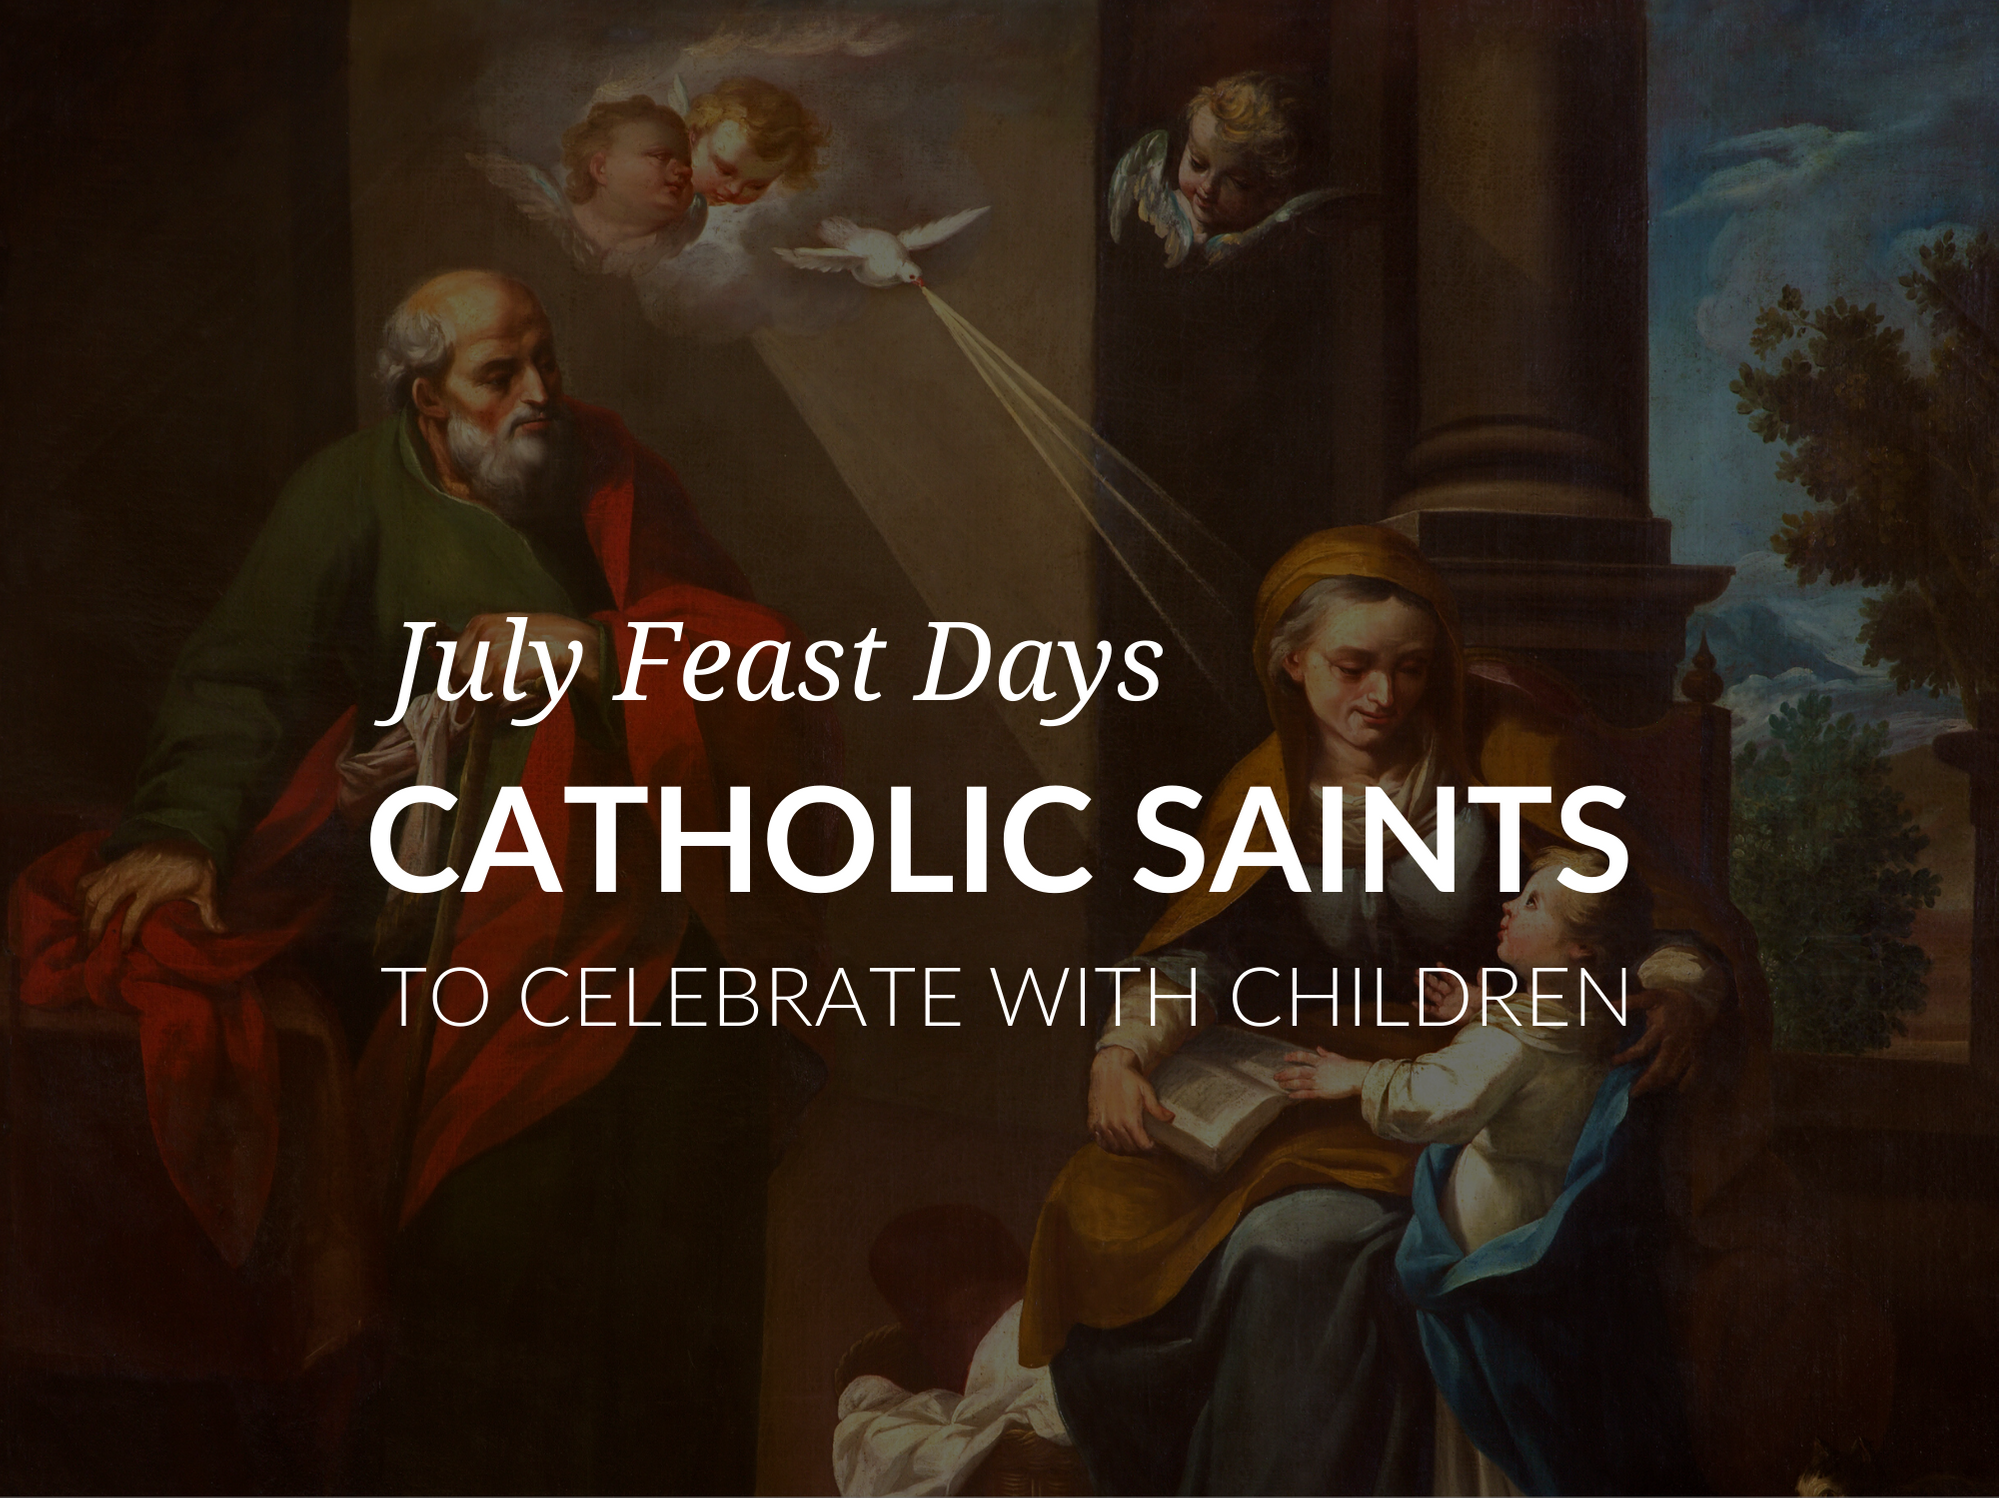 Printable Activities to Celebrate Saint Feast Days in July